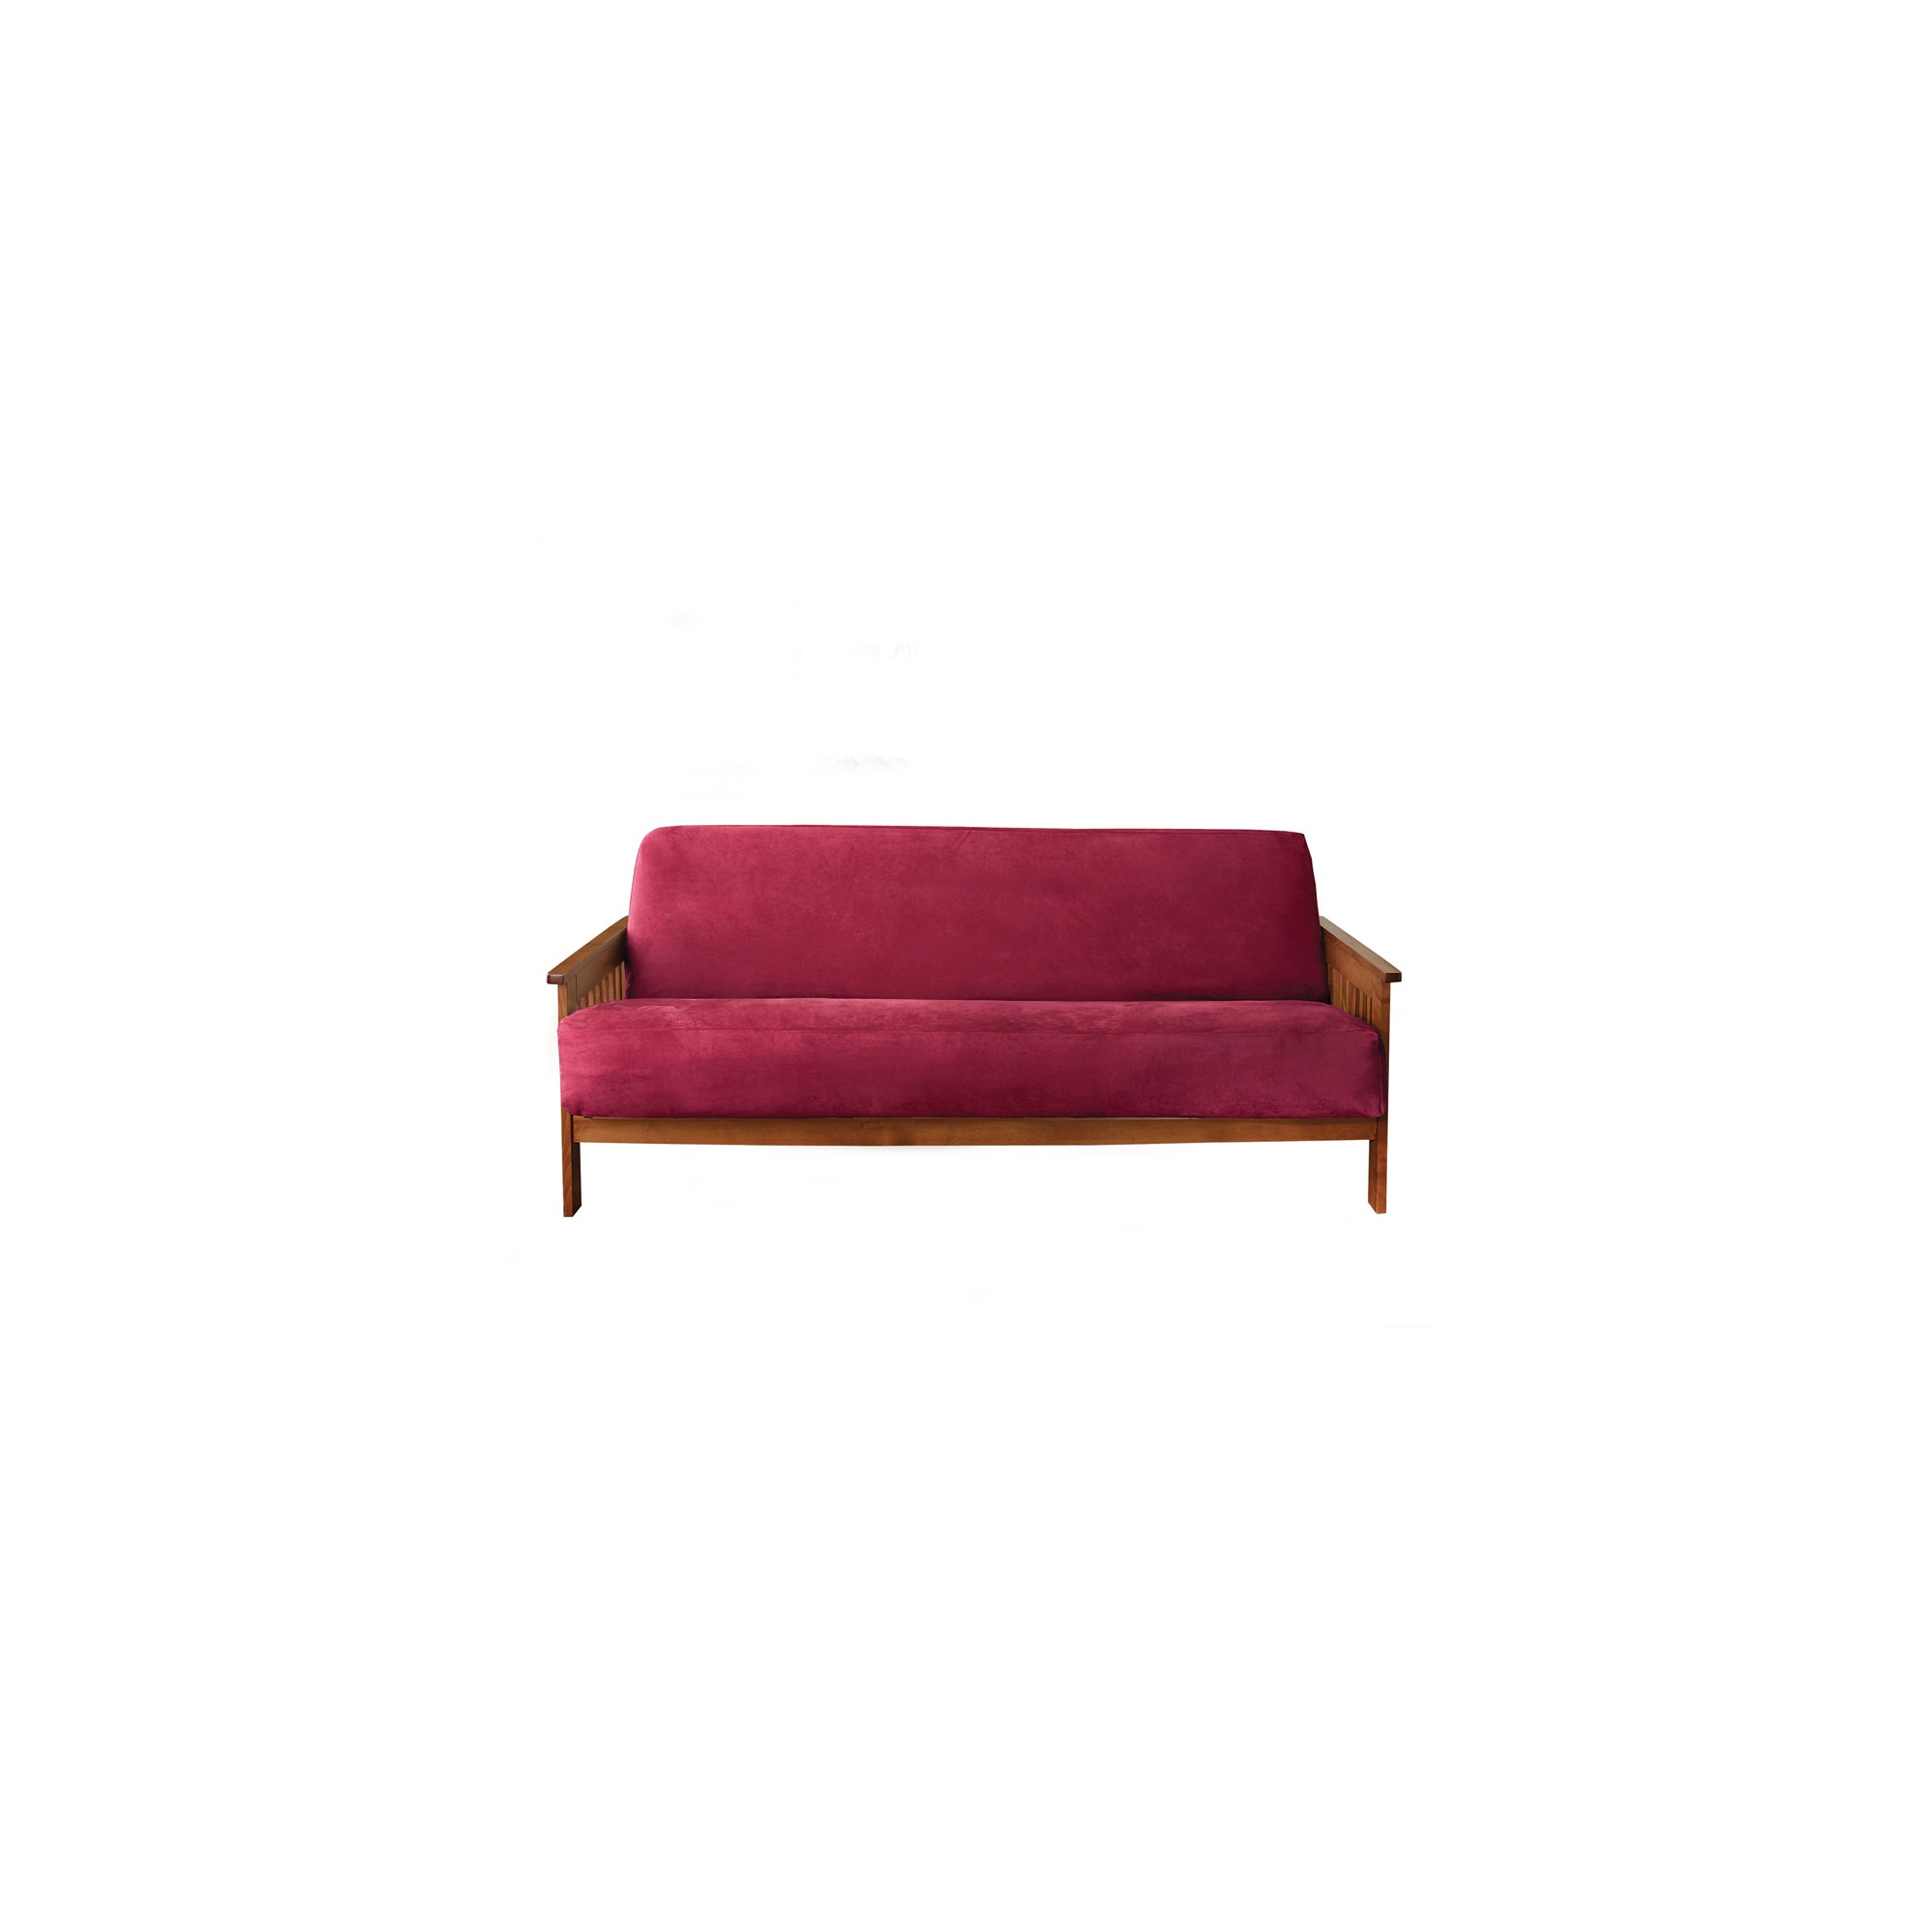 Soft Suede Futon Cover Burgundy Red Sure Fit